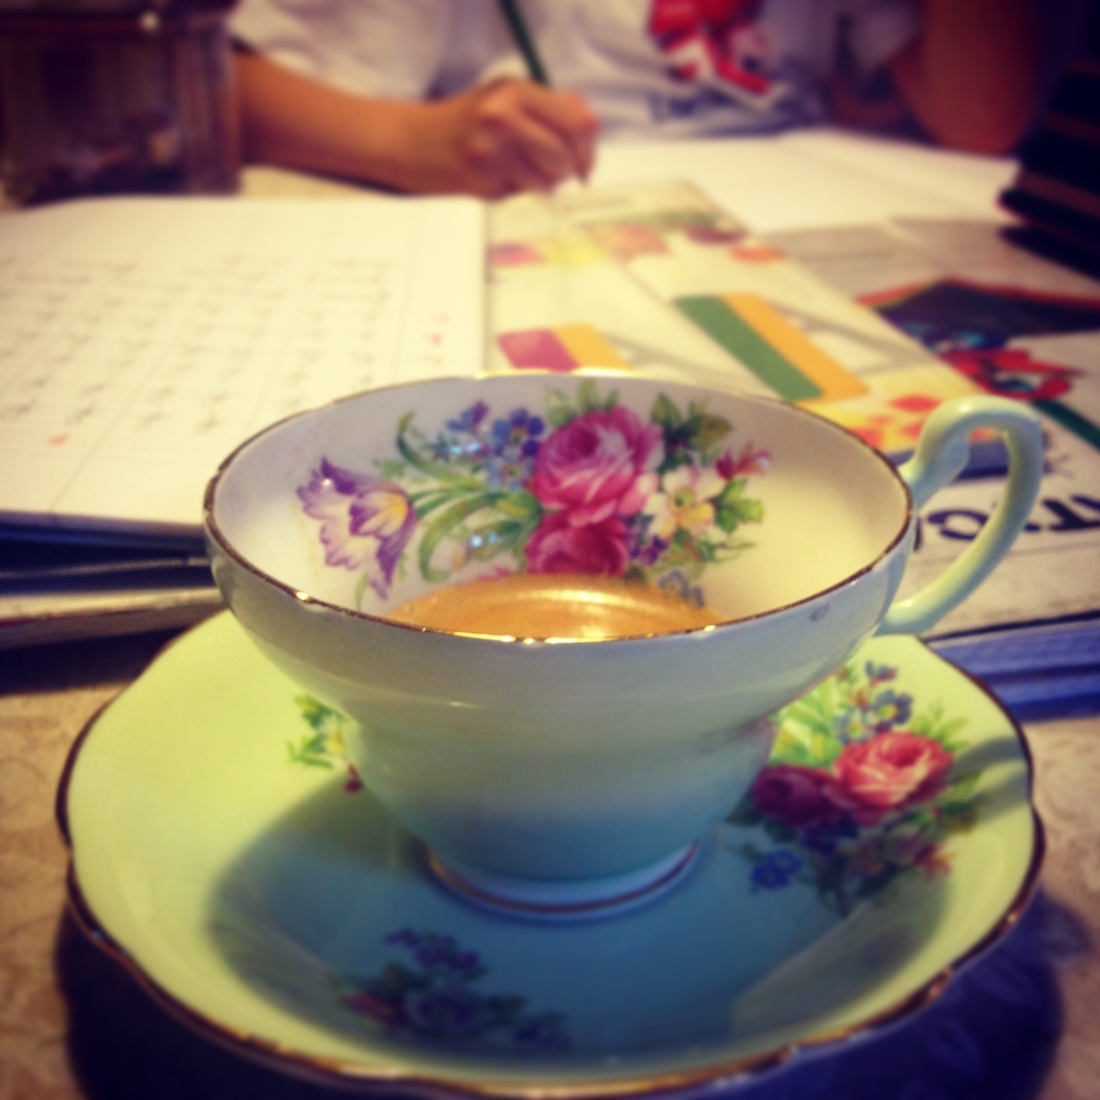 Homework... and coffee talking on the phone whit a Dearest Friend: thanks for the laughs !!